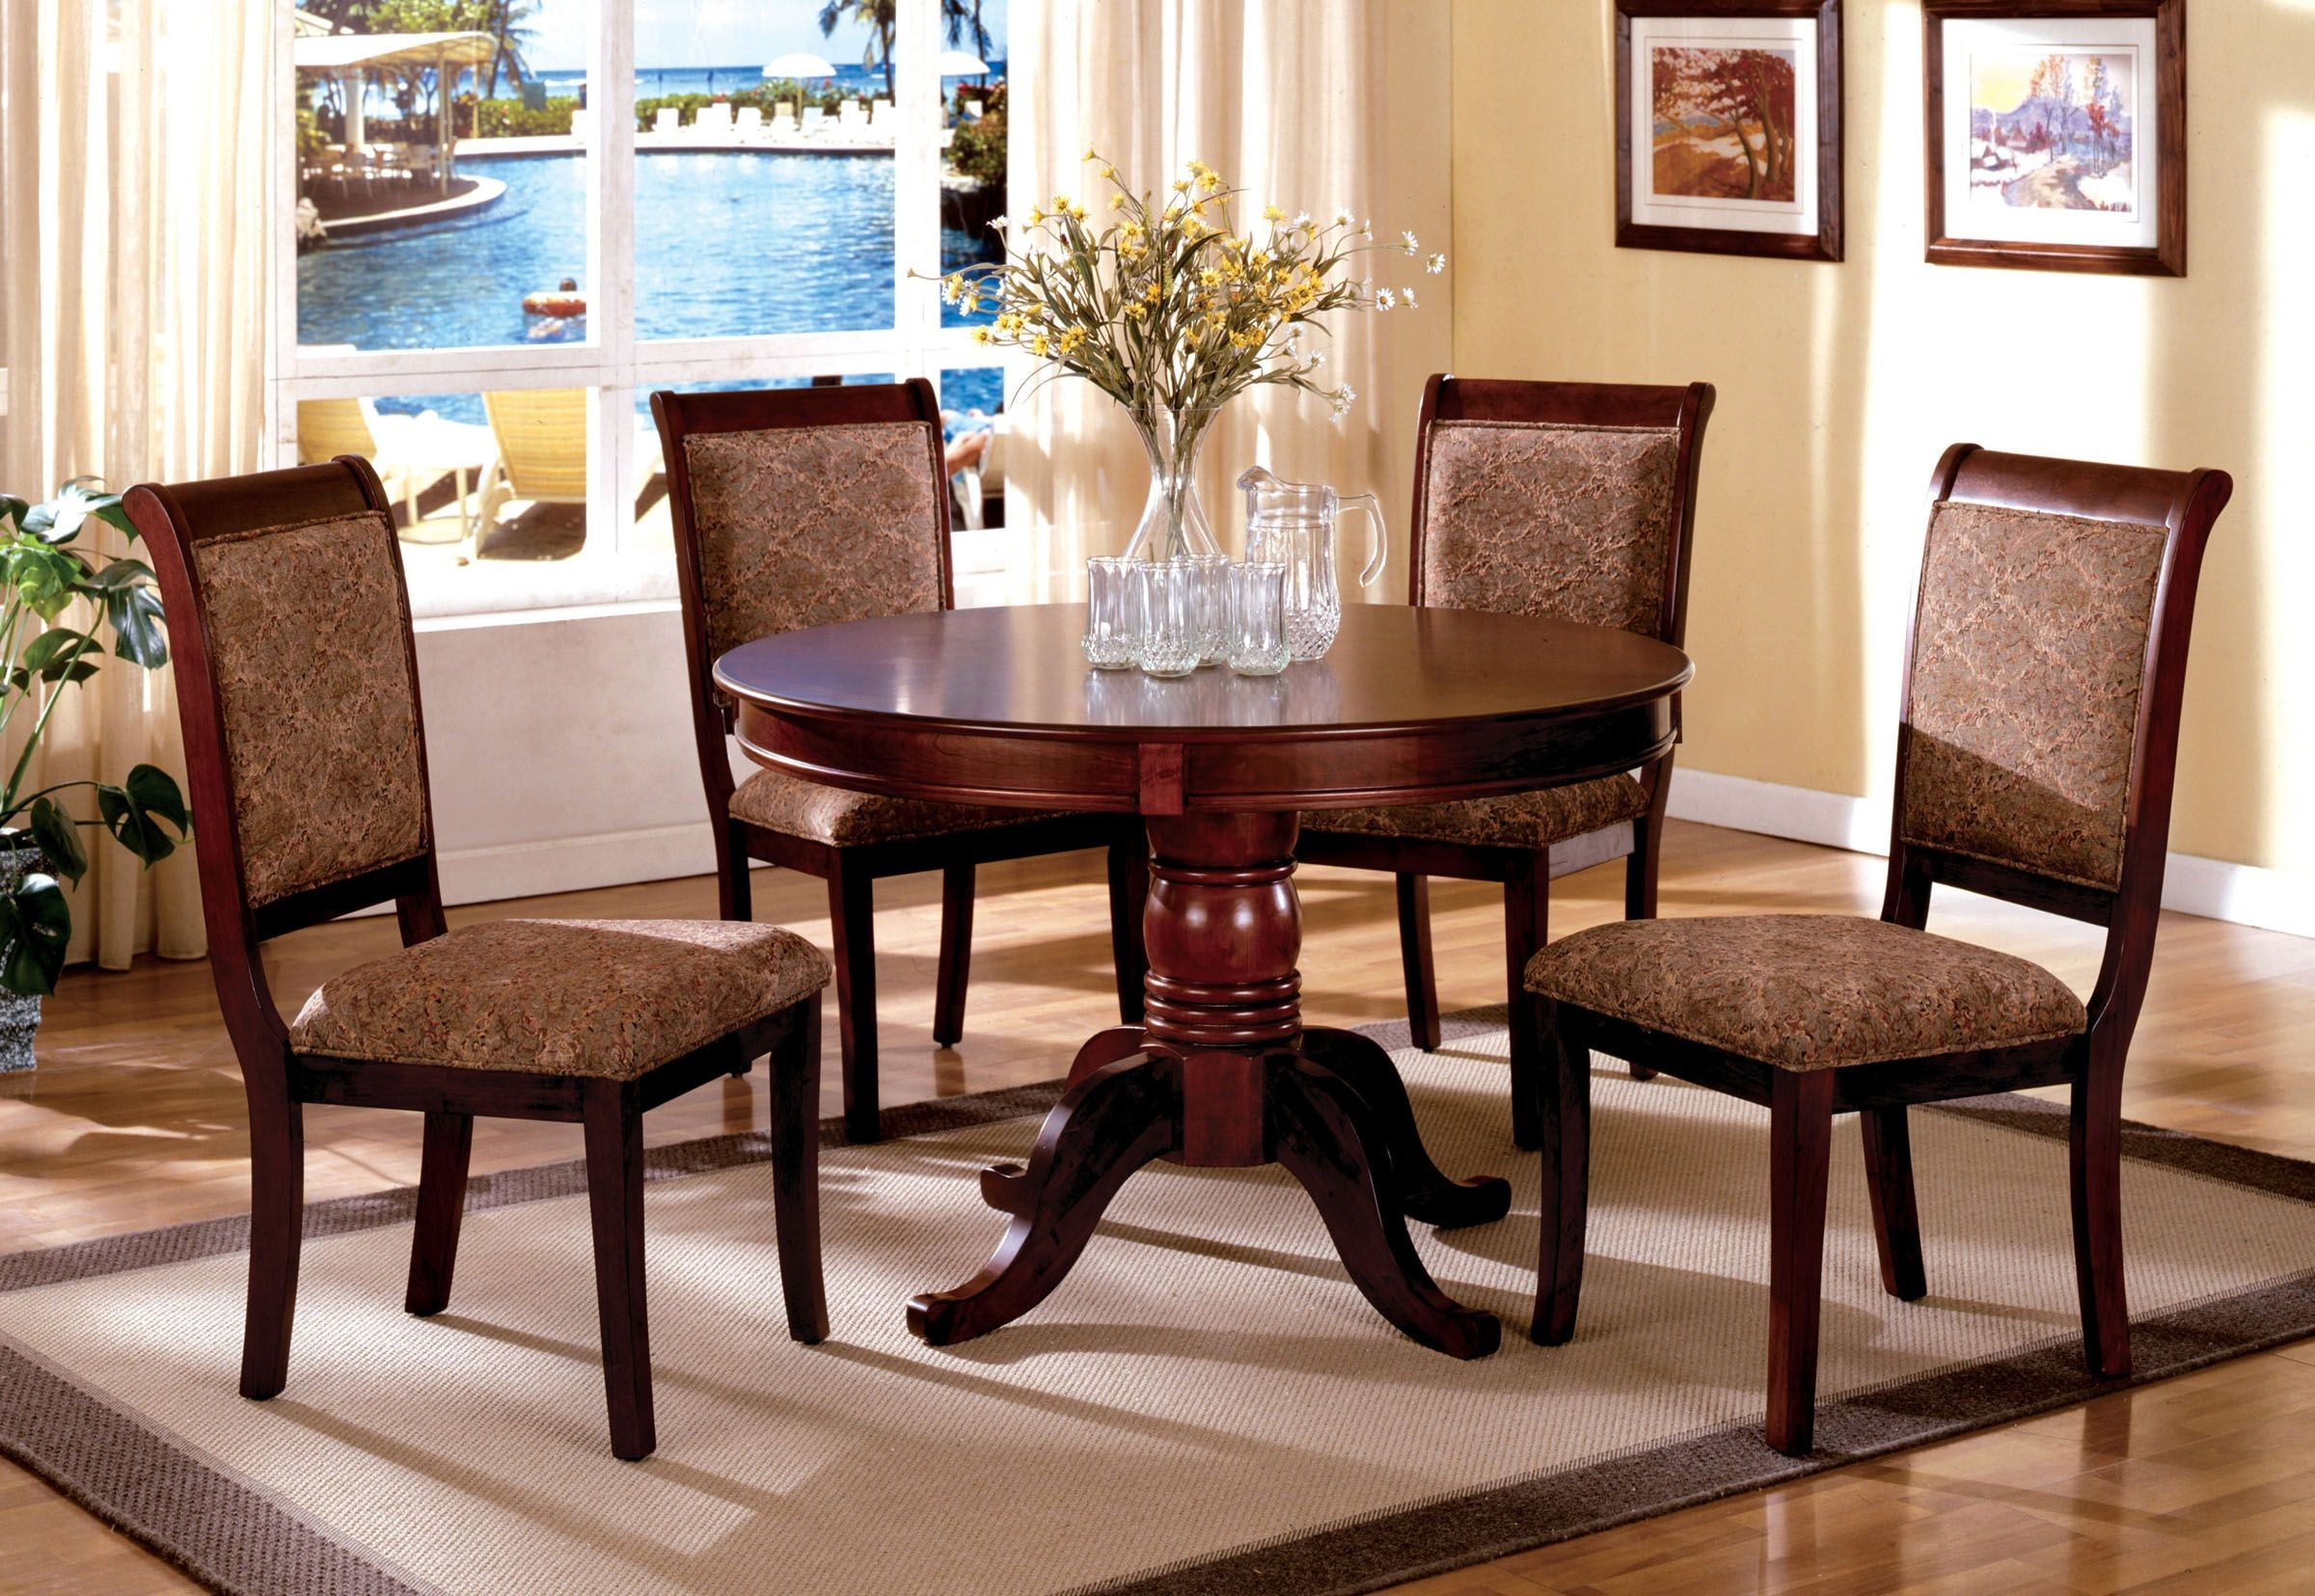 St nicholas ii antique cherry round pedestal dining room set from furniture of america Round dining table set